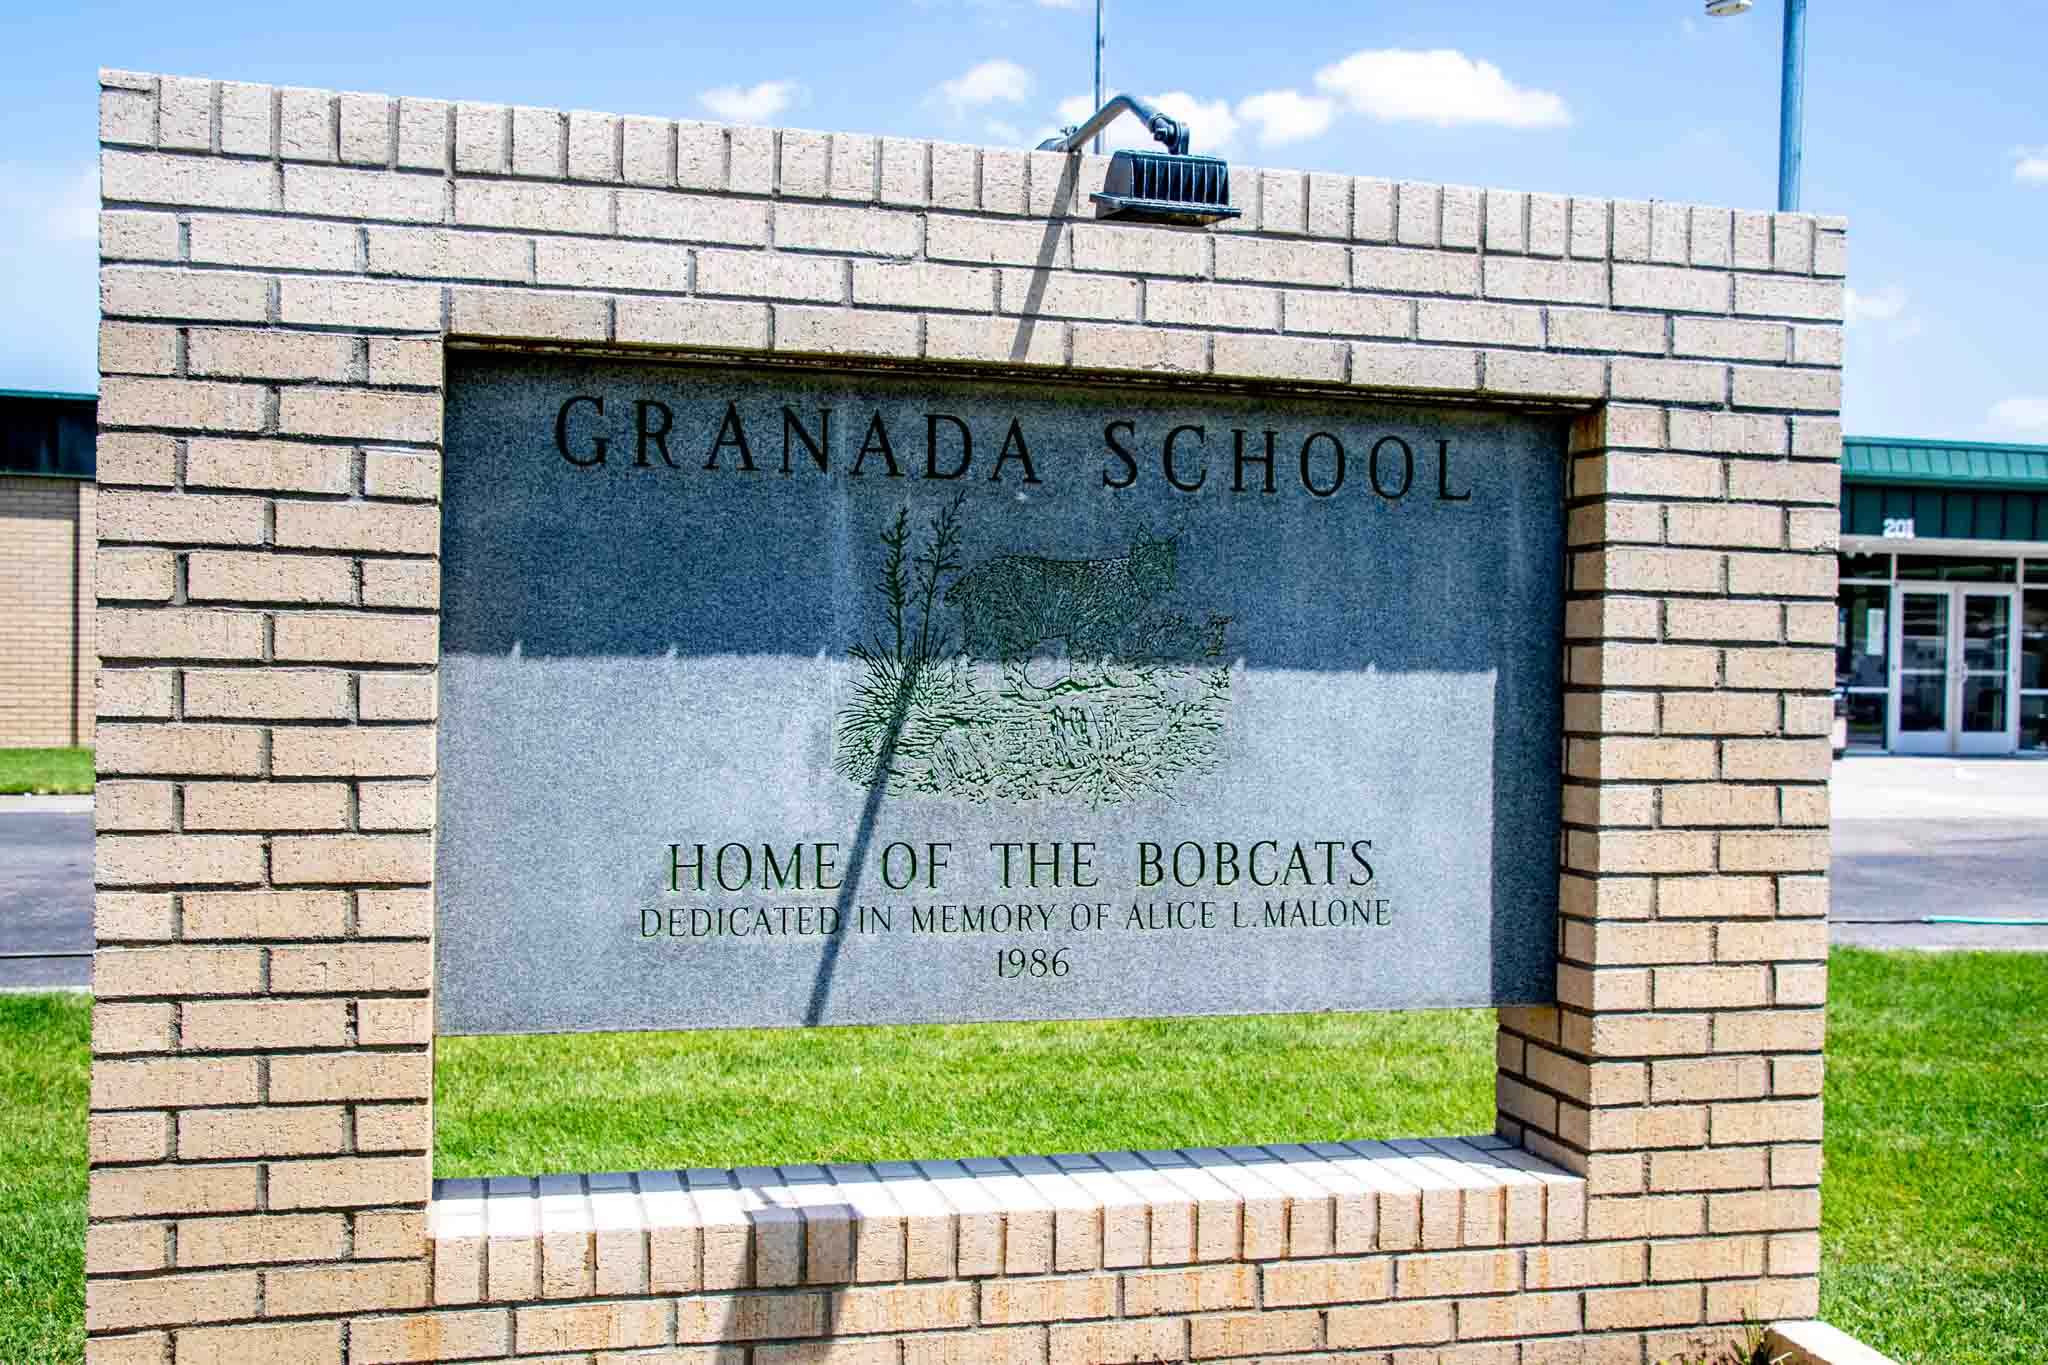 Sign for the Granada School, home of the Bobcats